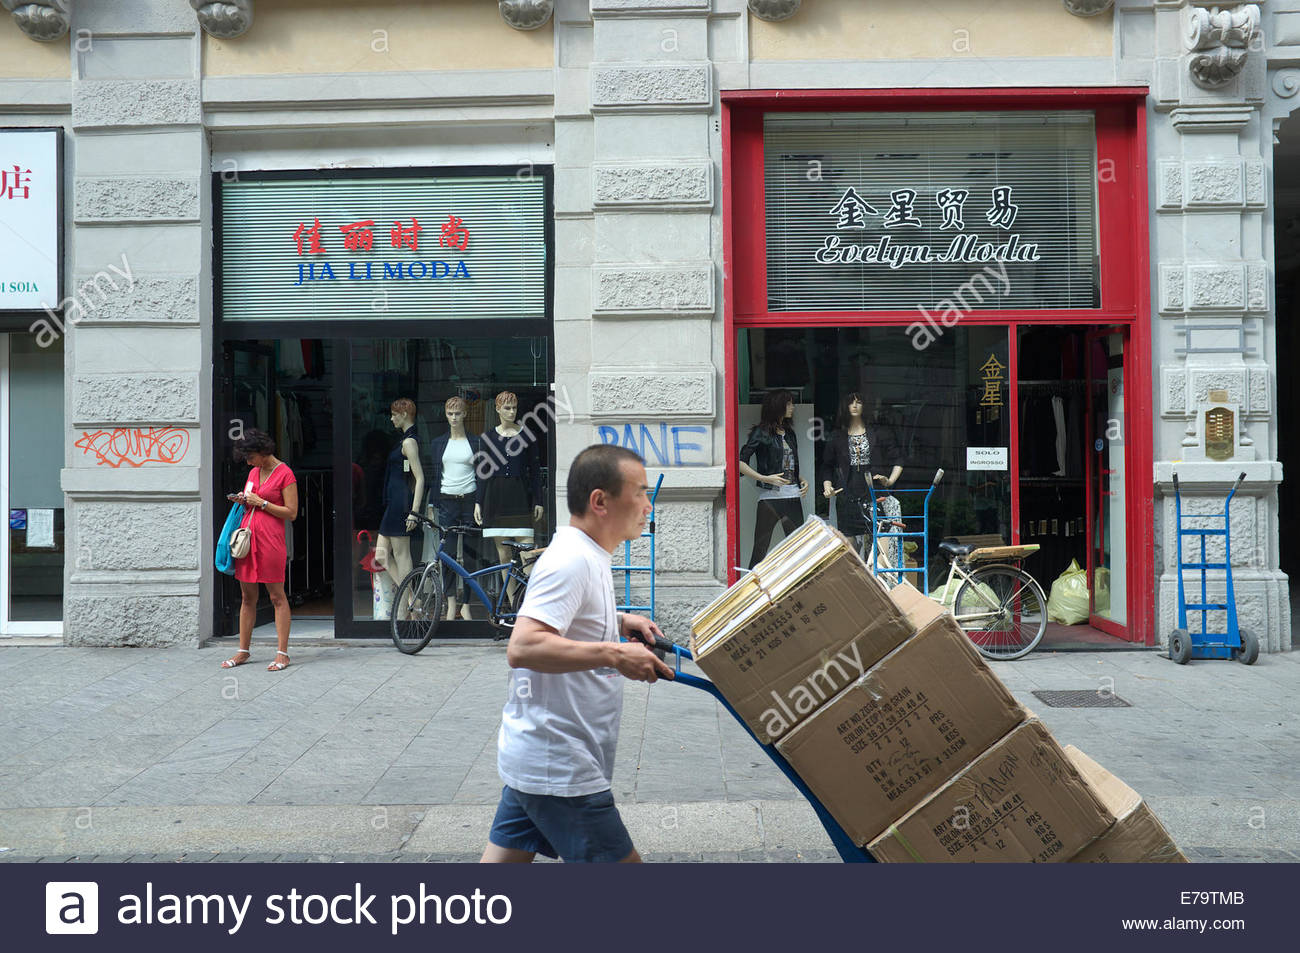 Street scene in the Chinatown area of Milan city, in Lombardy, Italy. Stock Photo